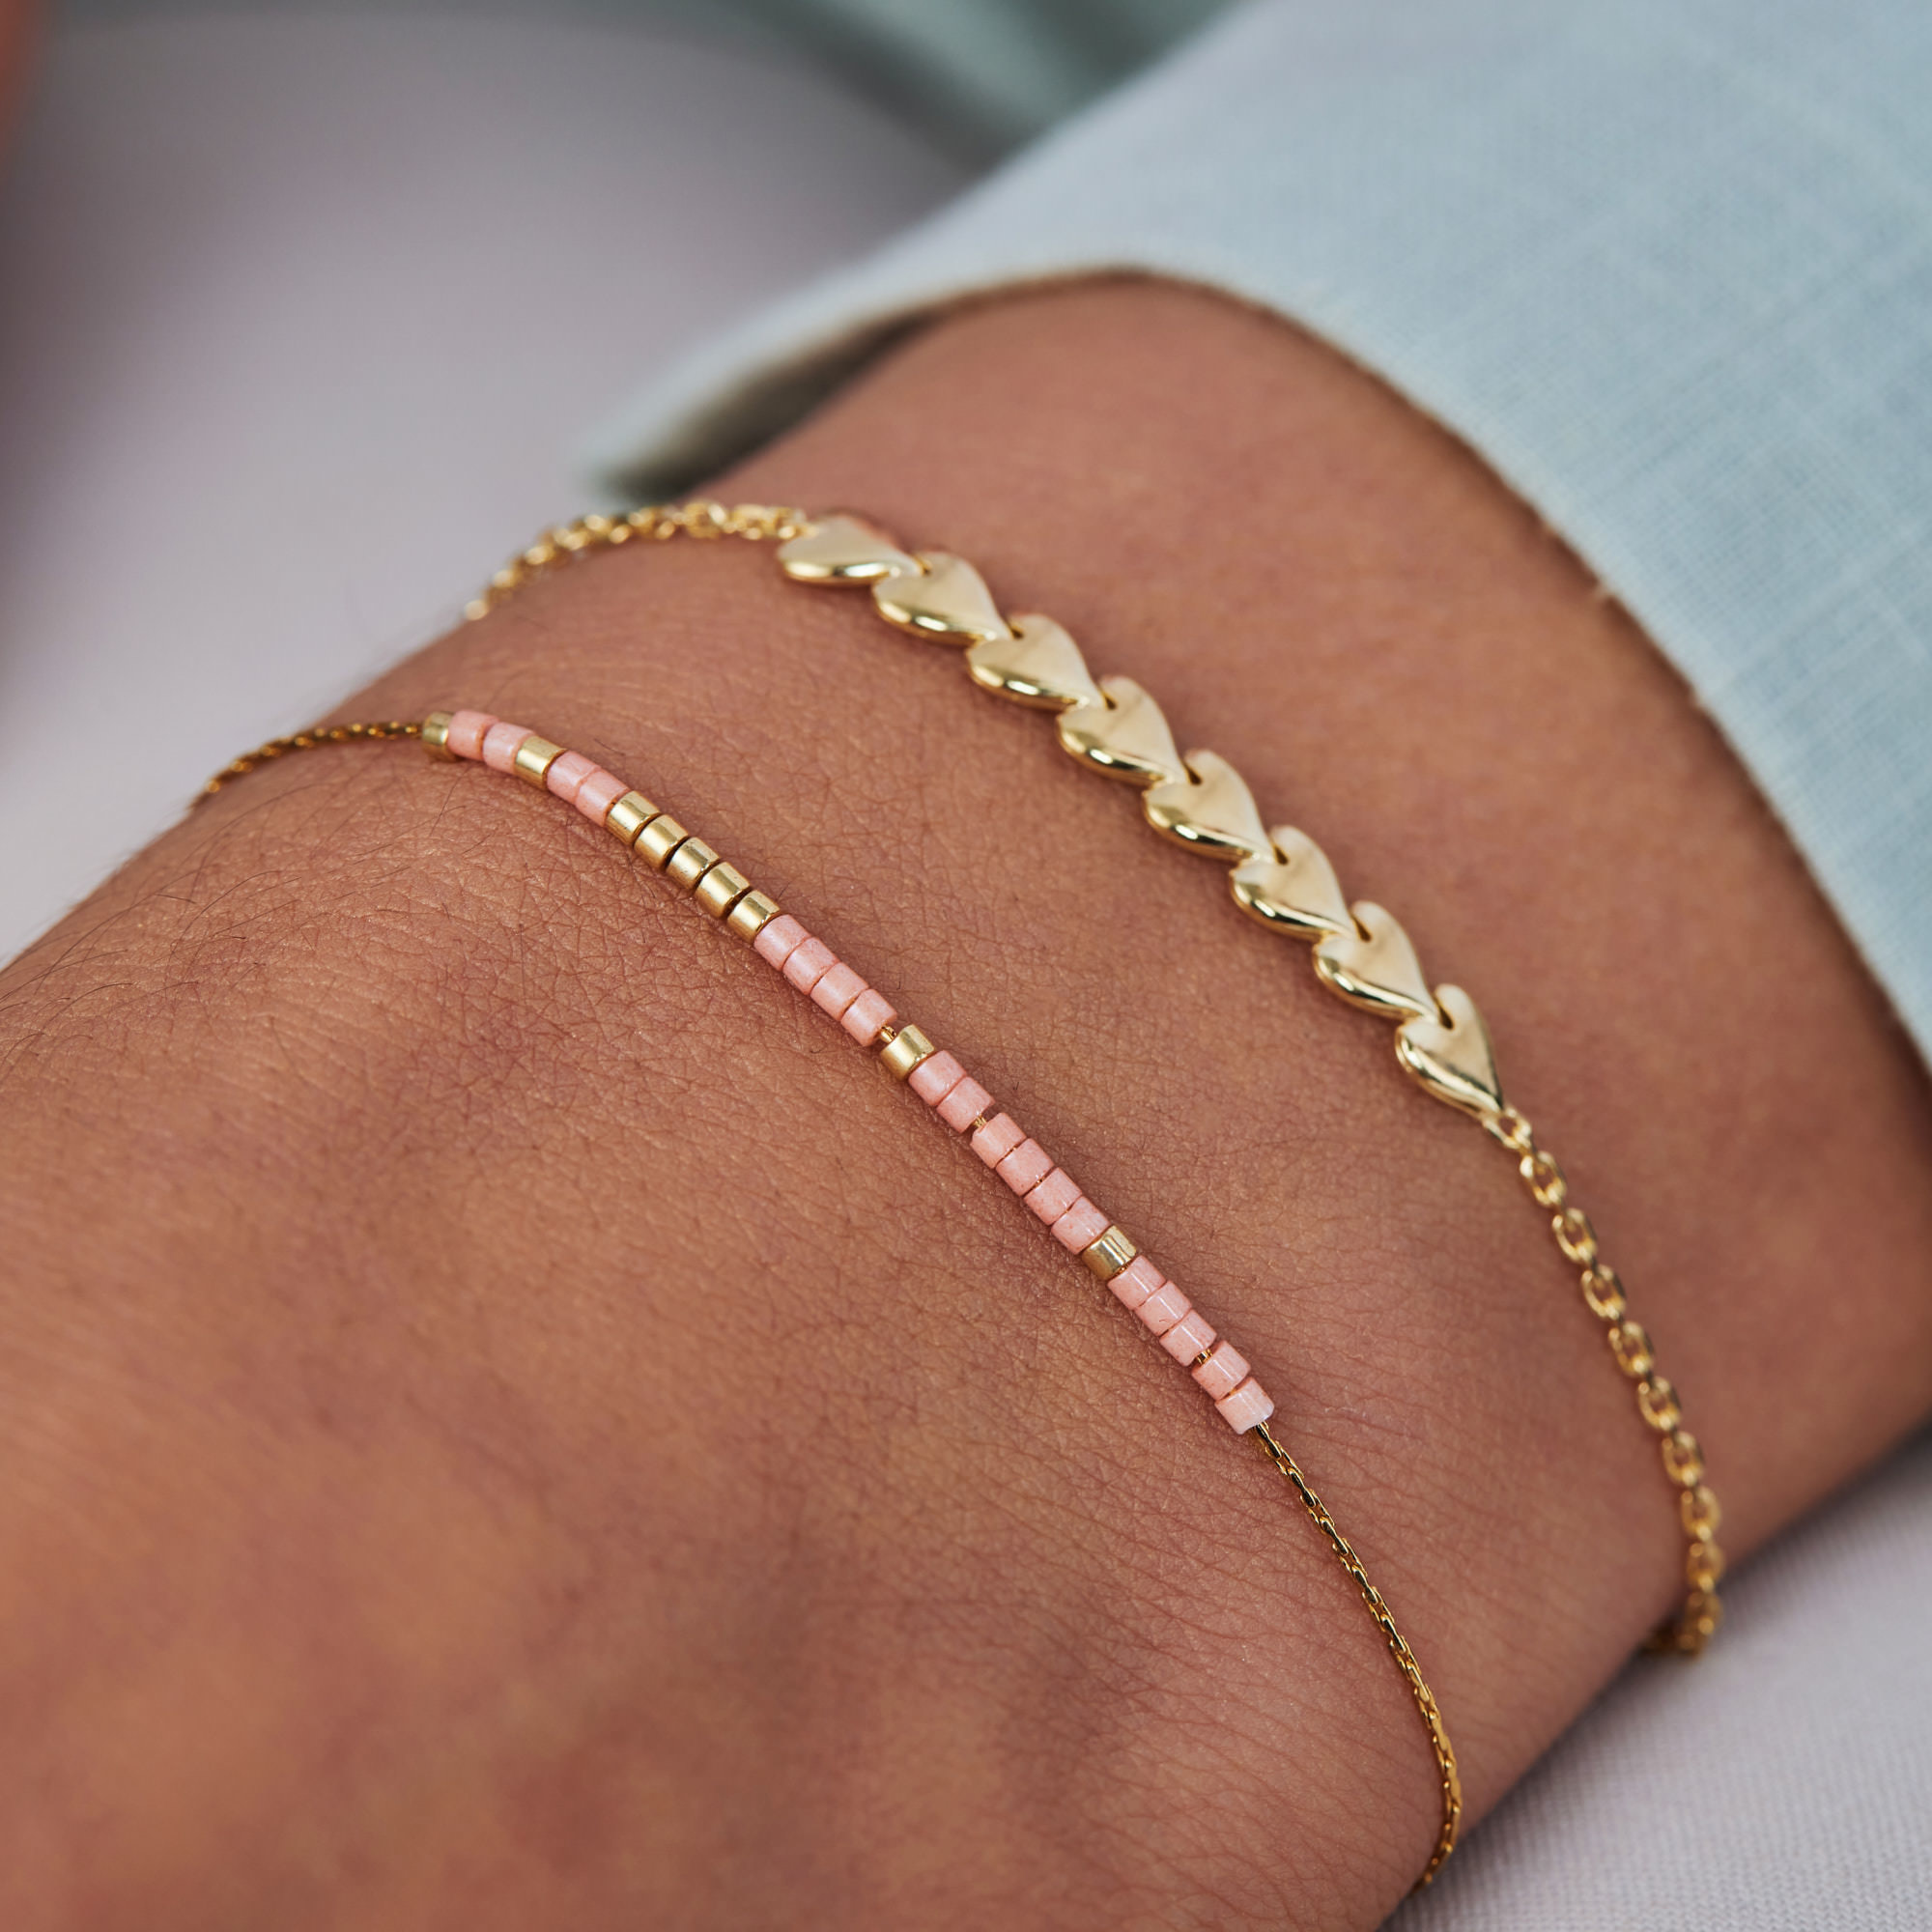 May Sparkle Happiness Sunny 925 sterling zilveren goudkleurige armband